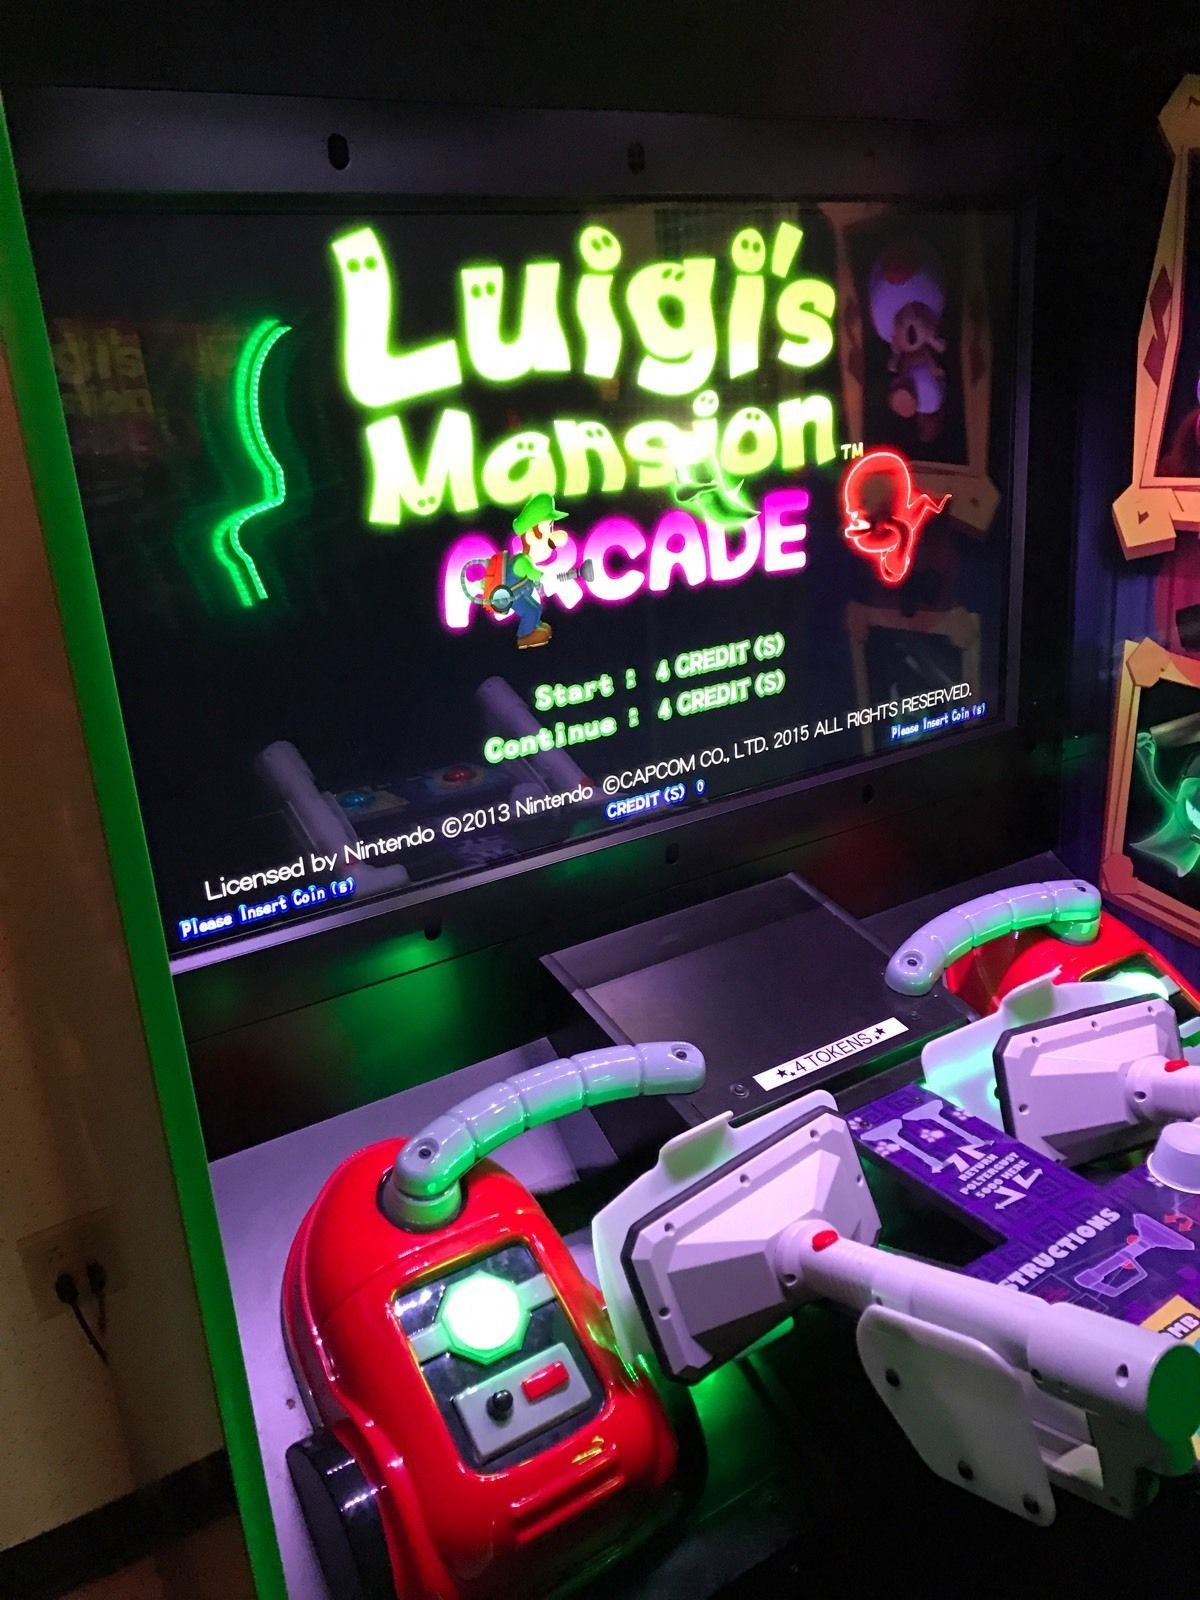 arcade dedicated sega luigi